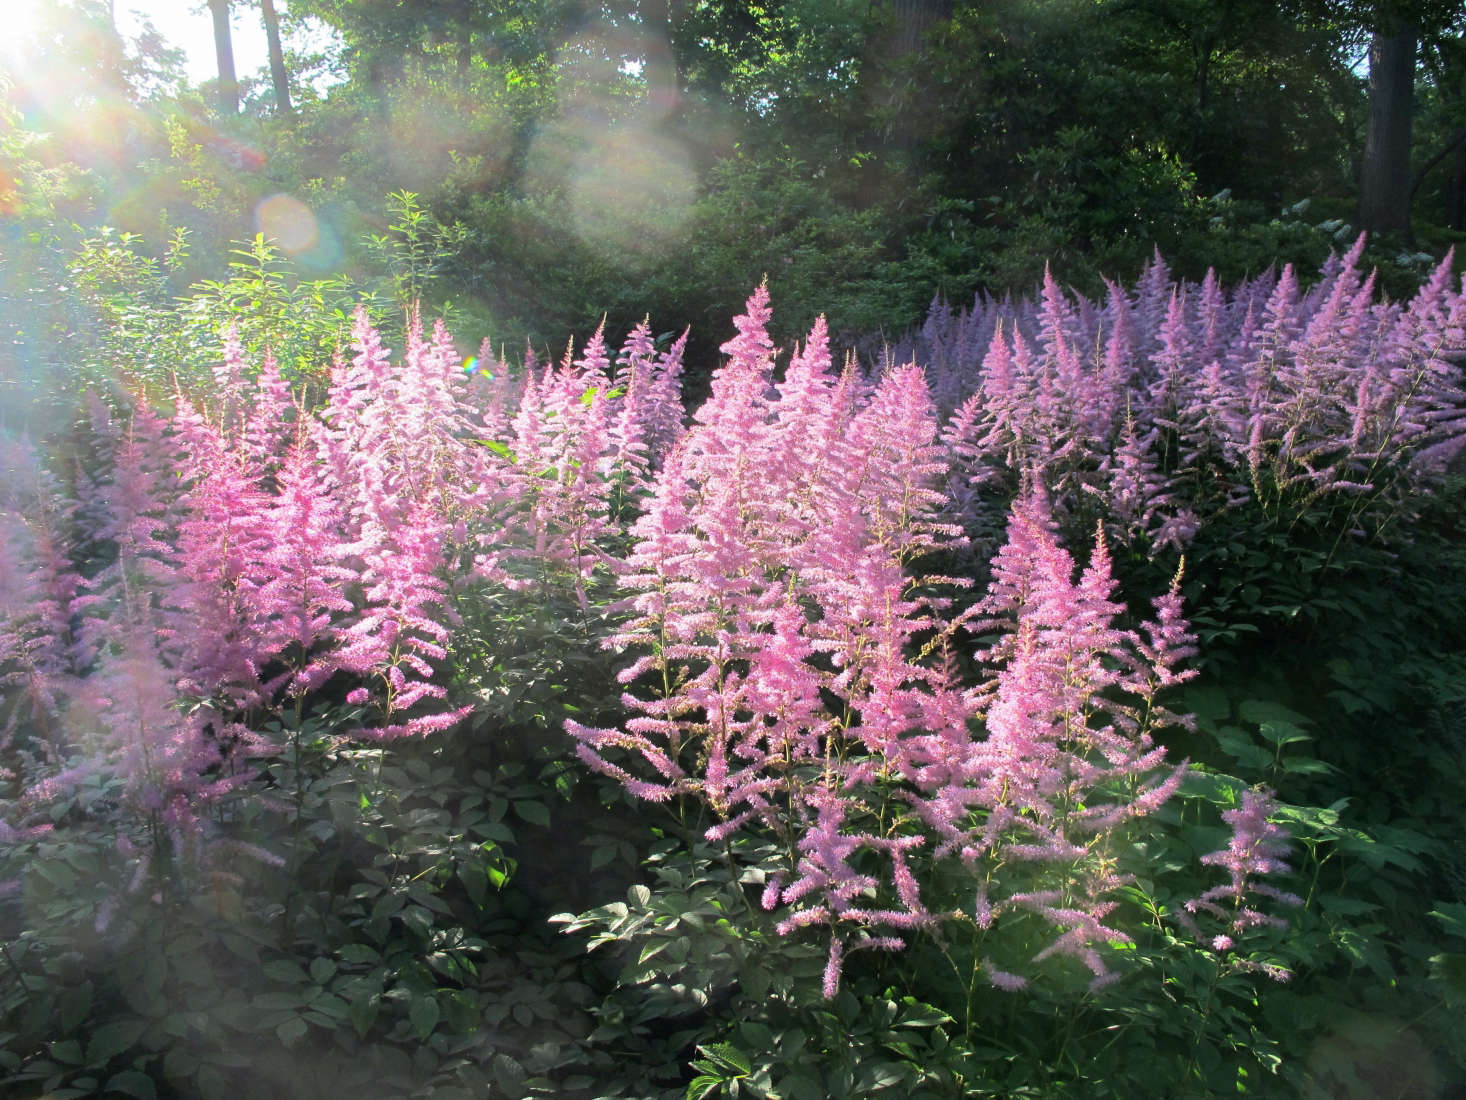 Pink astilbe lights up a corner of the New York Botanical Garden. This is the full, lush look I was hoping for in my garden. Photograph by Kristine Paulus via Flickr.